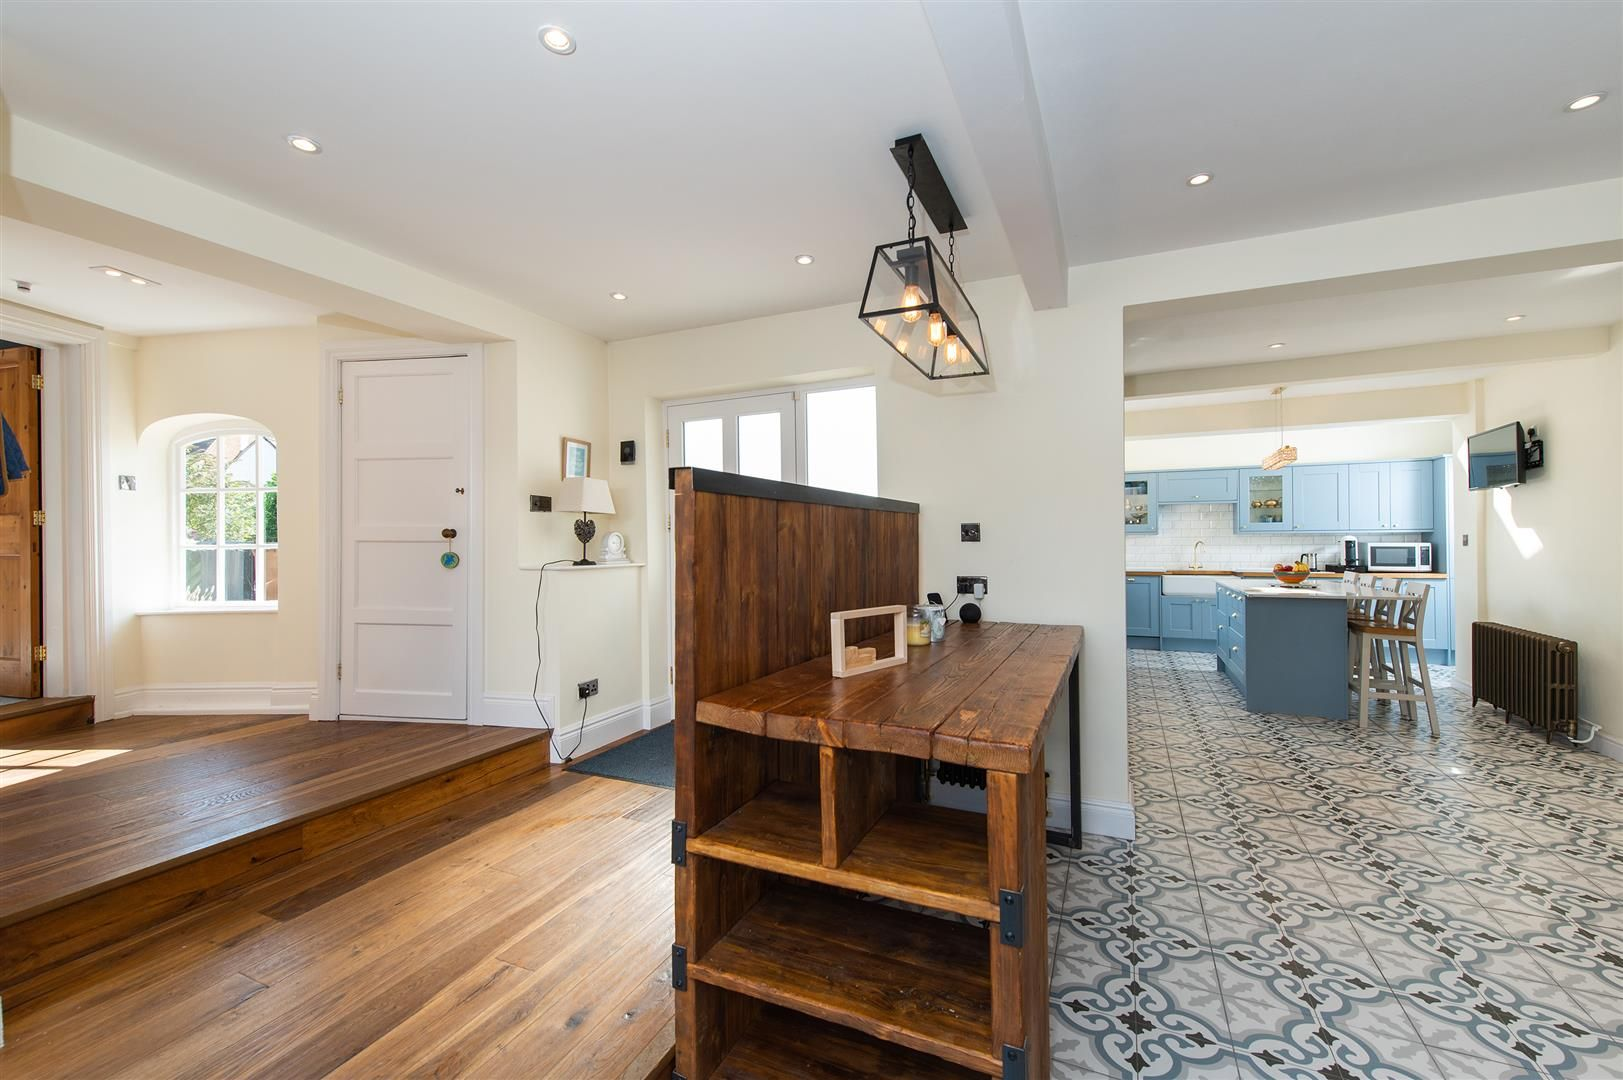 4 bed detached for sale in Blakedown 7